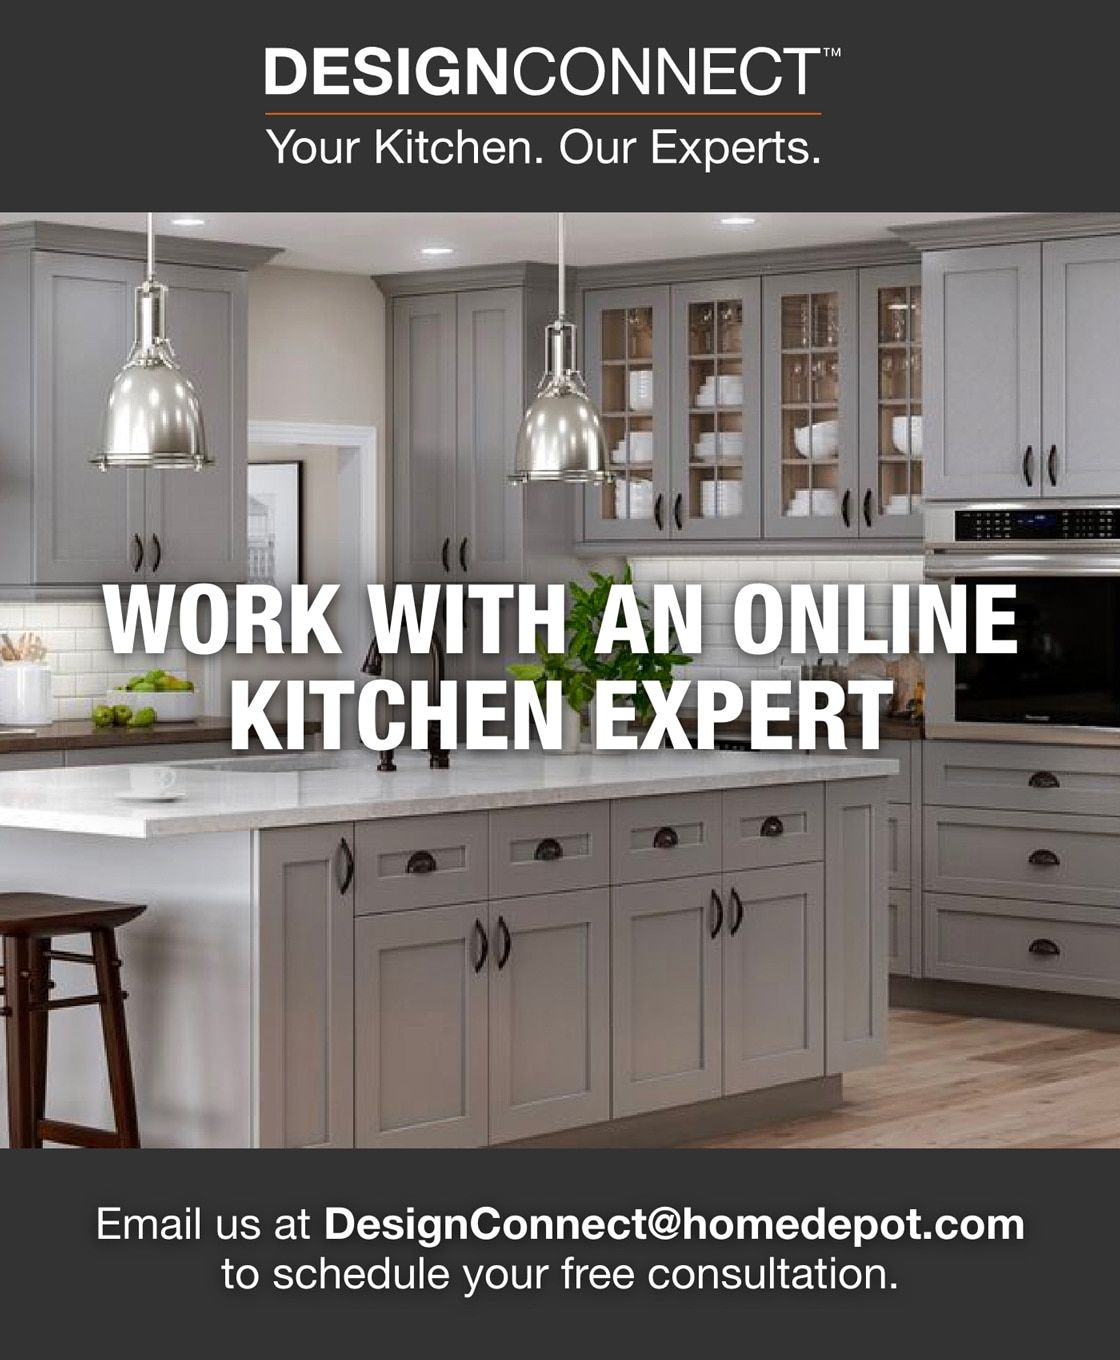 The Home Depot Designconnect In 2021 Diy Kitchen Remodel Kitchen Design Small Kitchen Tools Design